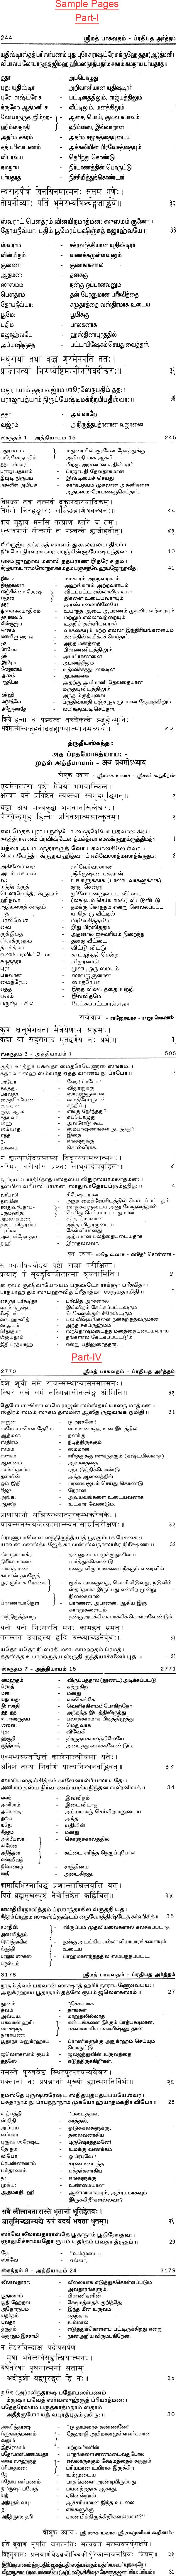 srimad bhagavatam in tamil pdf with meaning